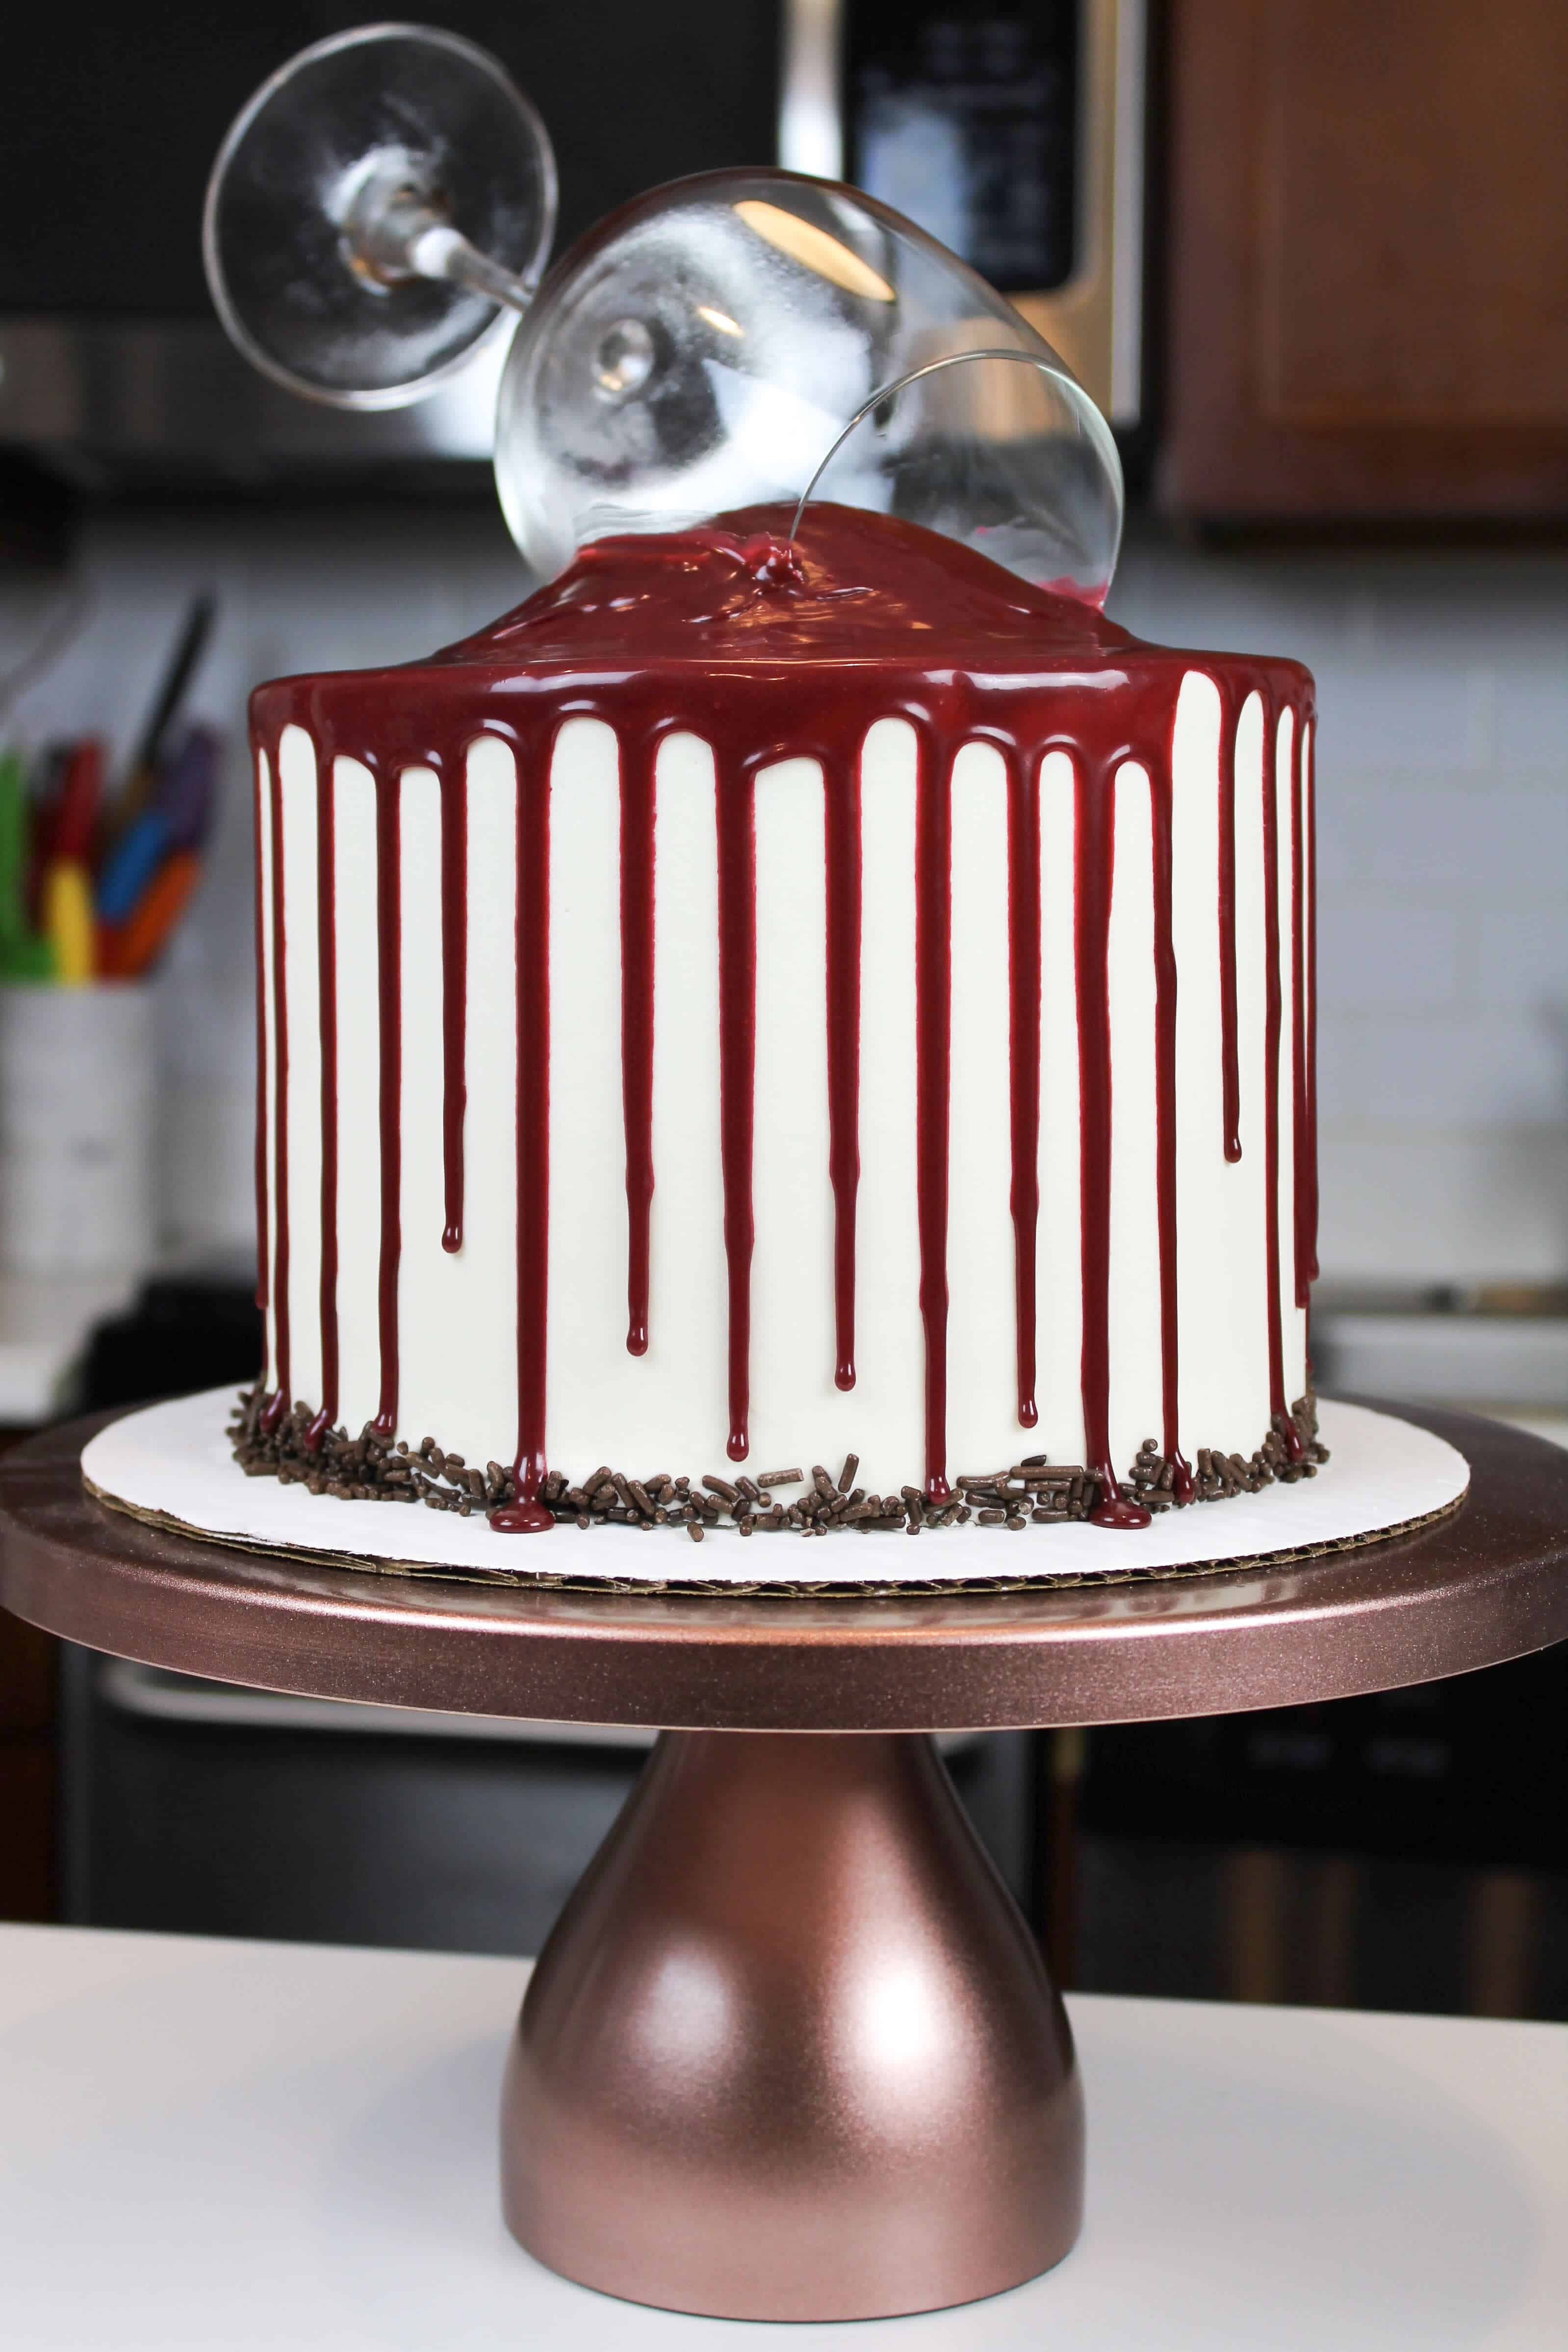 image of decorated red wine cake, with red wine drips and chocolate sprinkles around the base